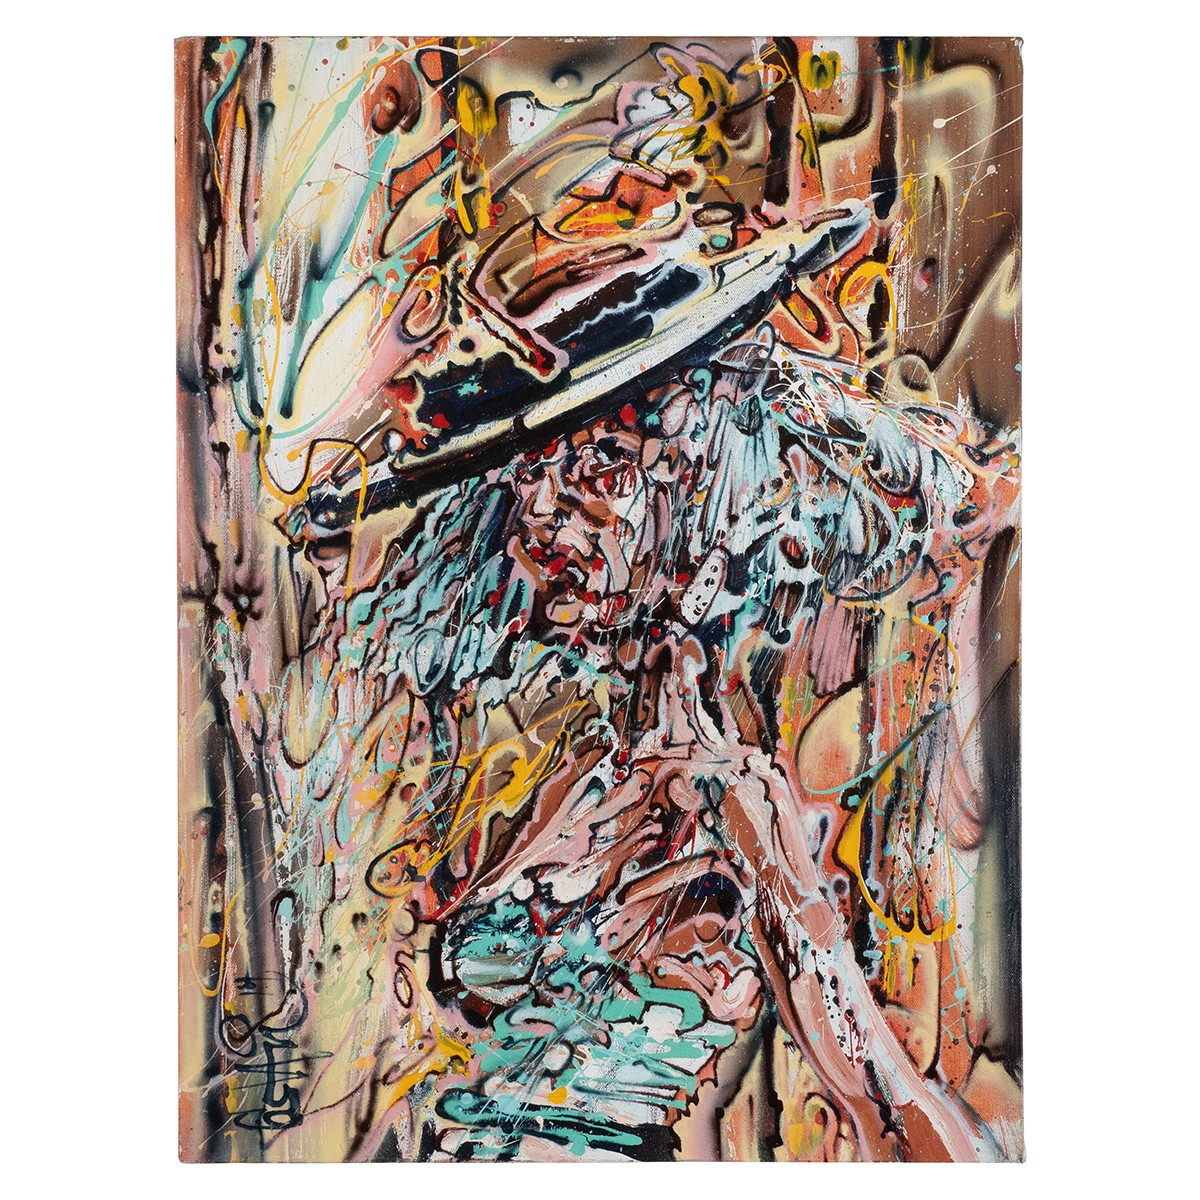 Modern Impressionistic Portrait of a Woman With Hat by Costain.